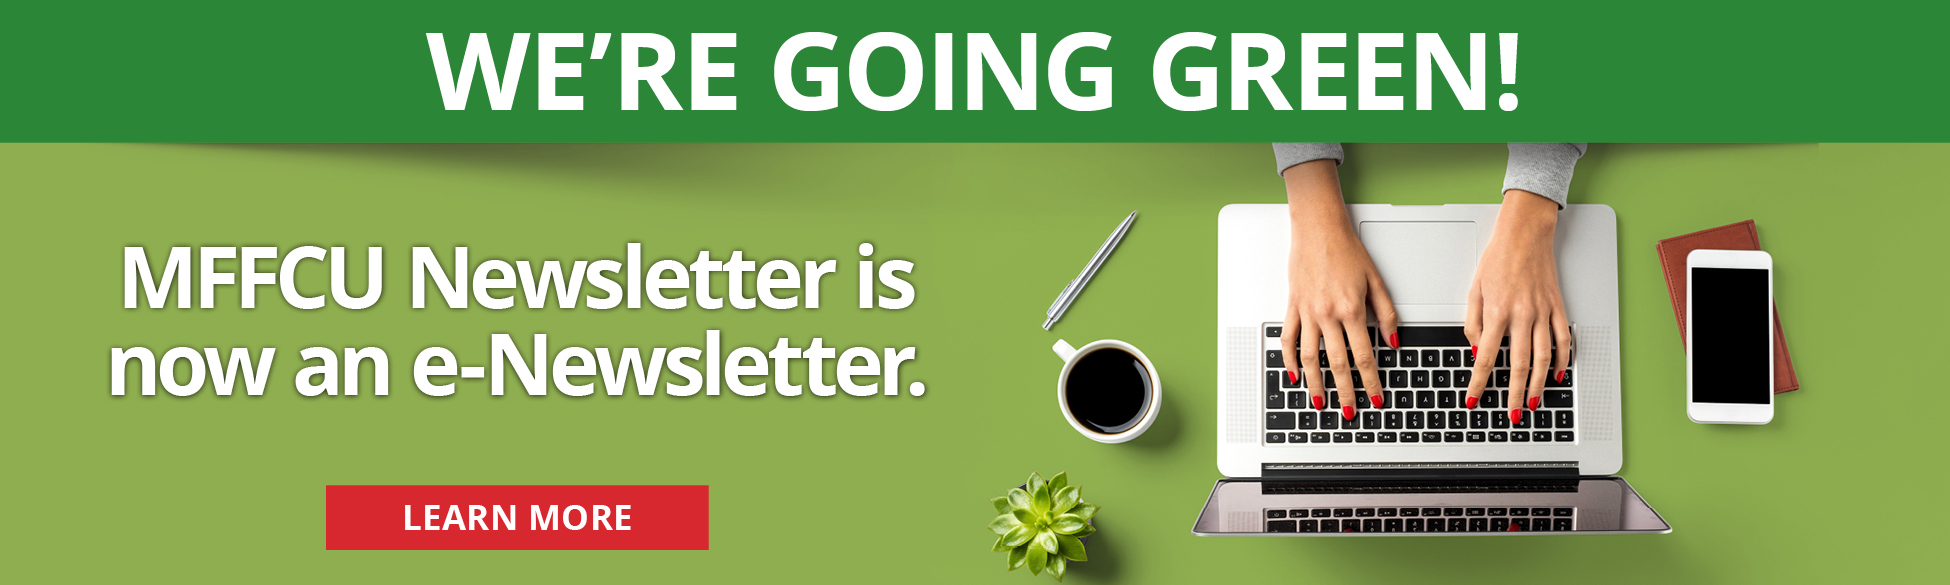 WE'RE GOING GREEN! MFFCU Newsletter is now an e-Newsletter. LEARN MORE